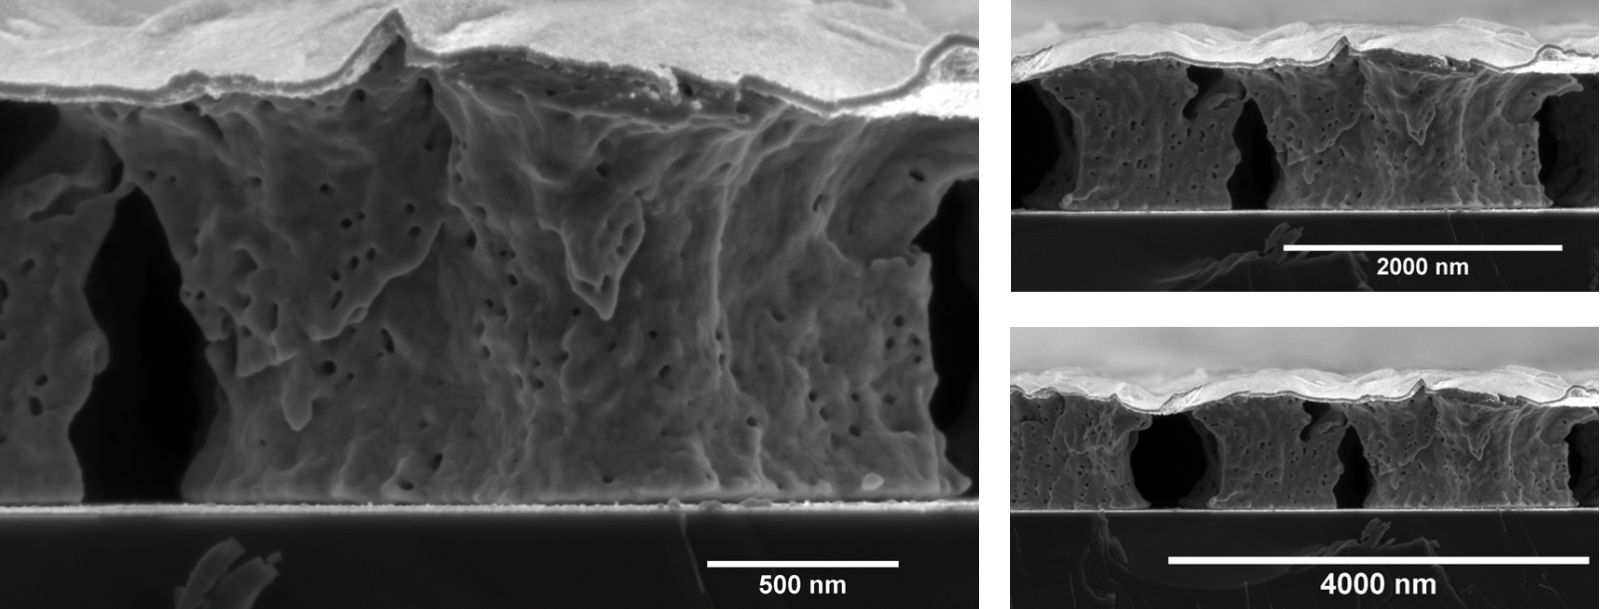 - Image by: Maria KosmidouImage title: Nanoporous Niobium Thin FilmImage description: Cross section of Nanoporous Niobium thin film (approx. 1 micron of thickness), fabricated after Vacuum Thermal Dealloying Technique from a Magnesium based precursor alloy (at. % Mg75Nb25) via Physical Vapor Deposition. Figure contains three frames in different magnifications indicating both the nanoscale (higher magnification) and the microscale porosity (lower magnification). For the sake of homogeineity, a thin dense layer of Niobium has benn deposited on the top of the nanoporous film.